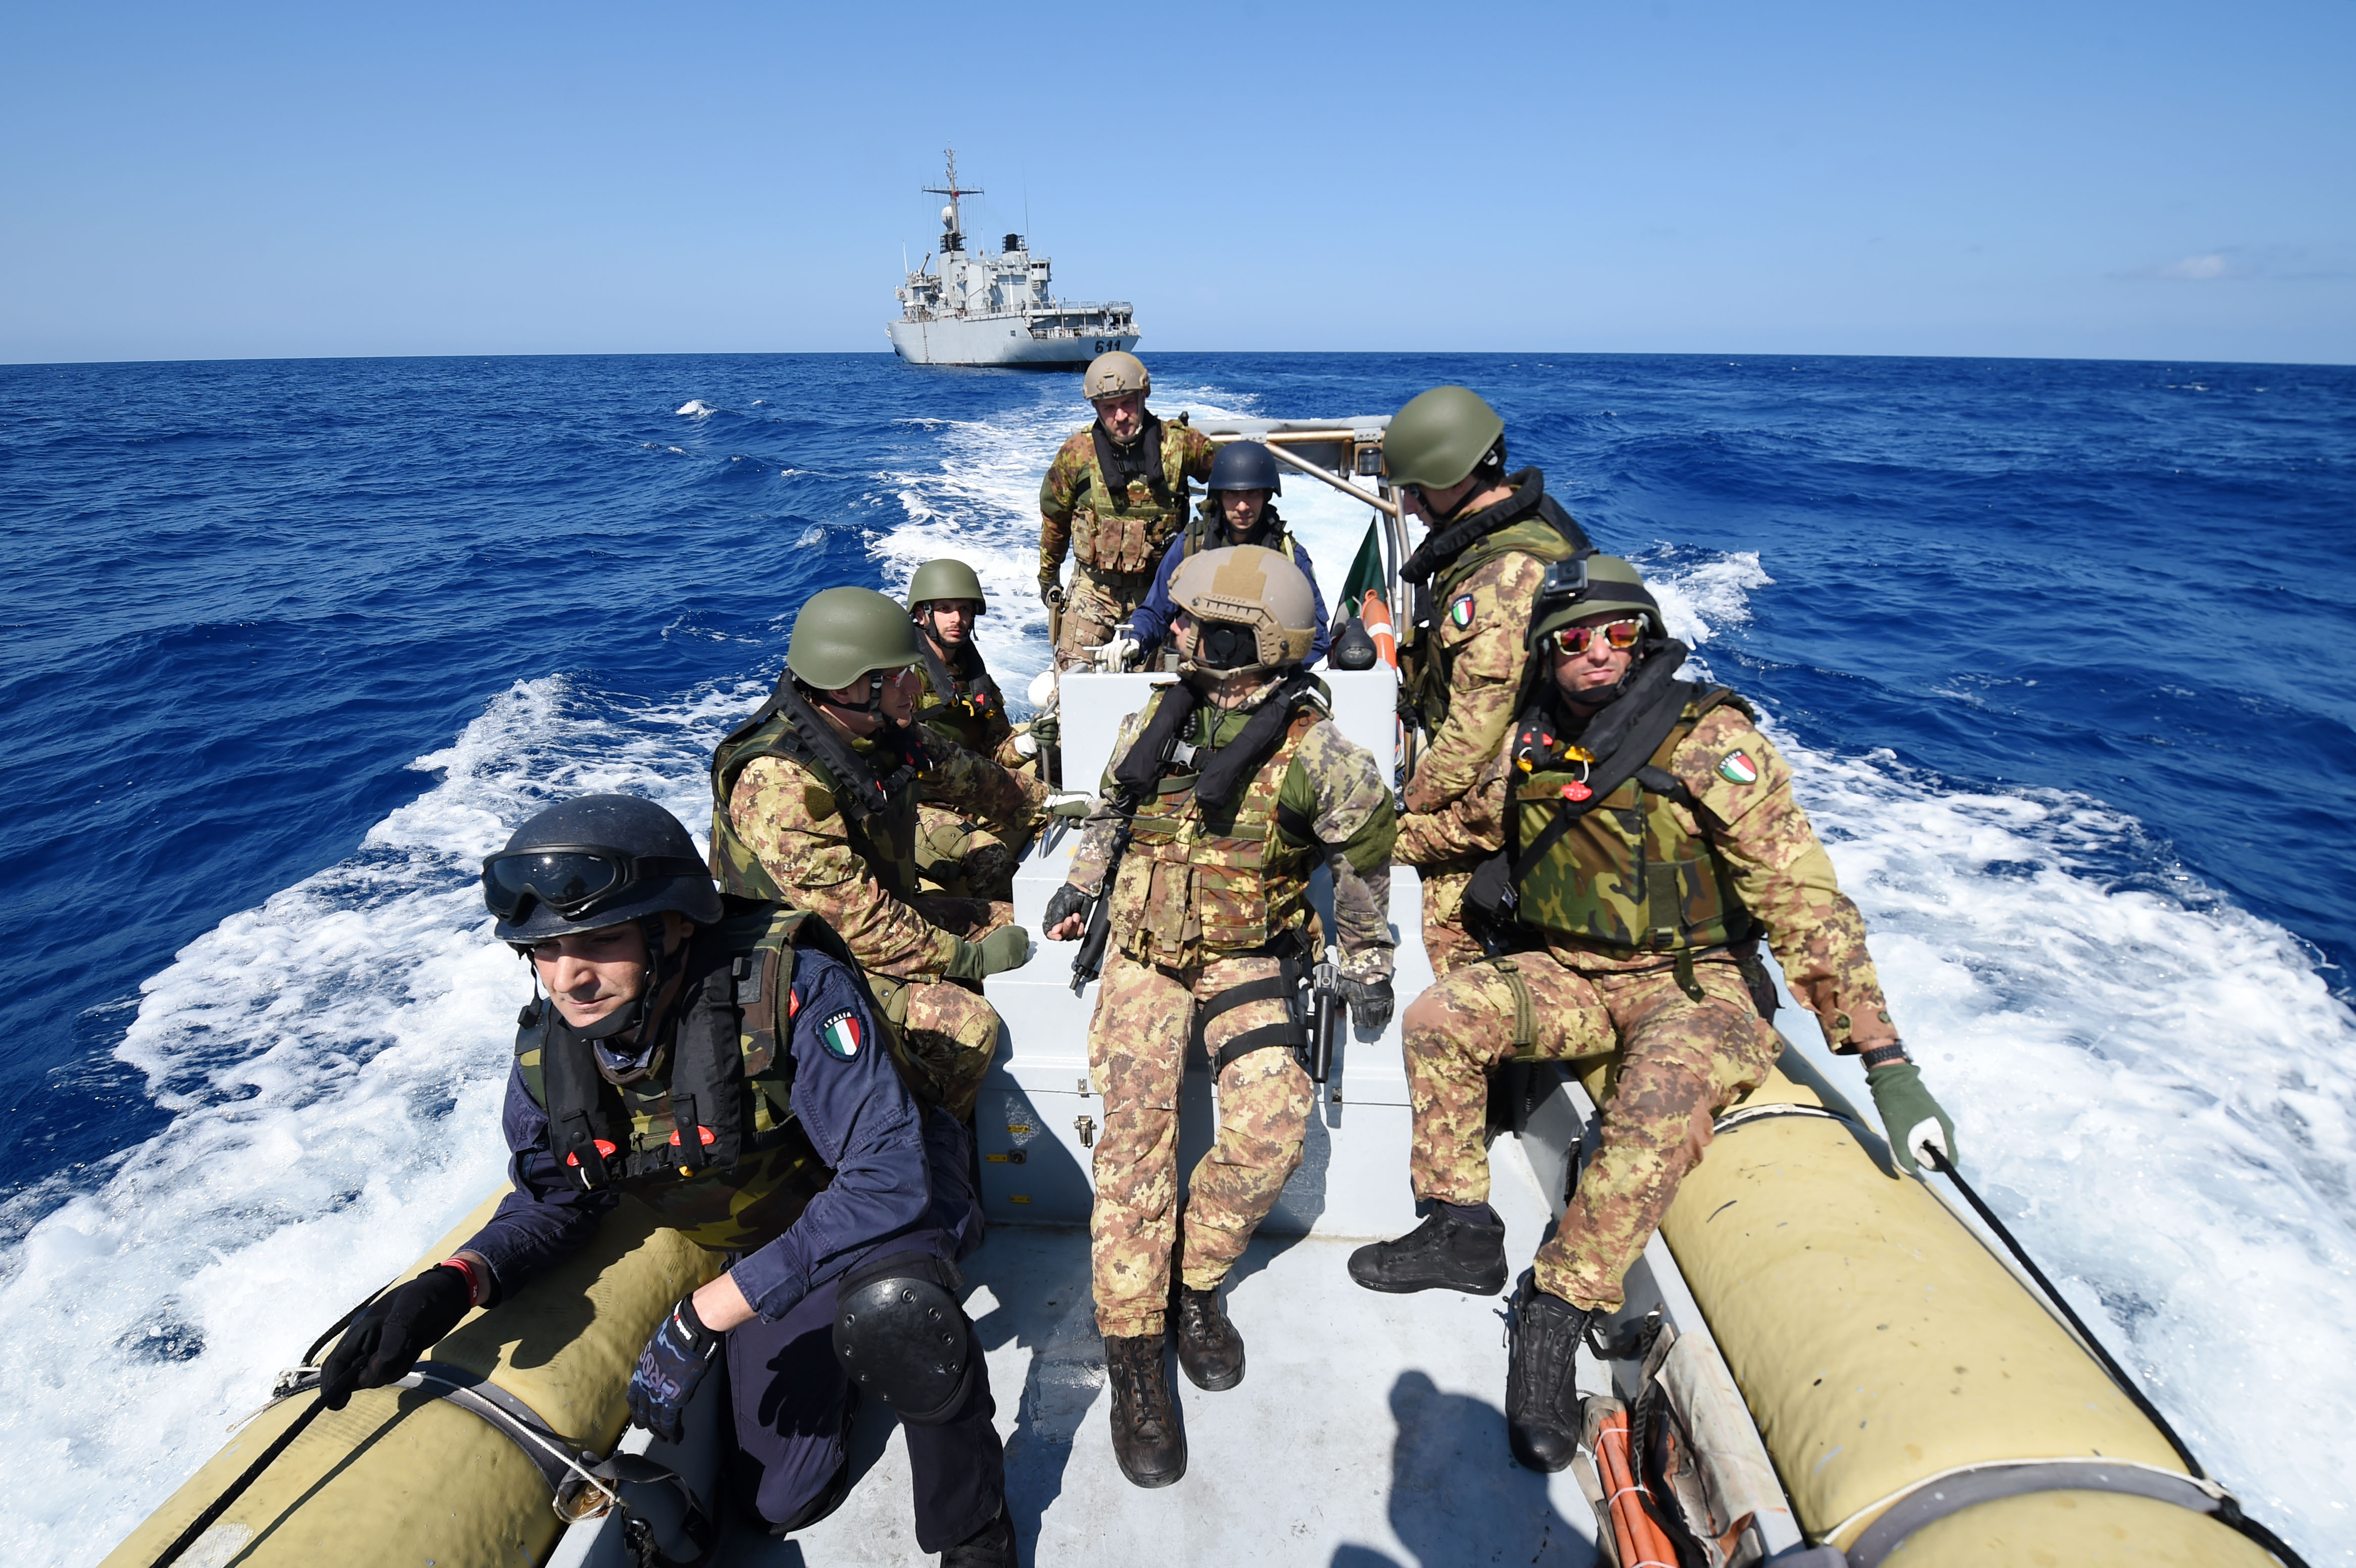 160525-N-XT273-411 MEDITERRANEAN SEA (May 25, 2016) Italian sailors and marines participate in a mock visit, board, search, and seizure boarding drill aboard the Royal Moroccan ship P611 during exercise Phoenix Express 2016, May 25. Phoenix Express is a U.S. Africa Command-sponsored multinational maritime exercise designed to increase maritime safety and security in the Mediterranean. (U.S. Navy photo by Mass Communication Specialist 2nd Class Justin Stumberg/Released)